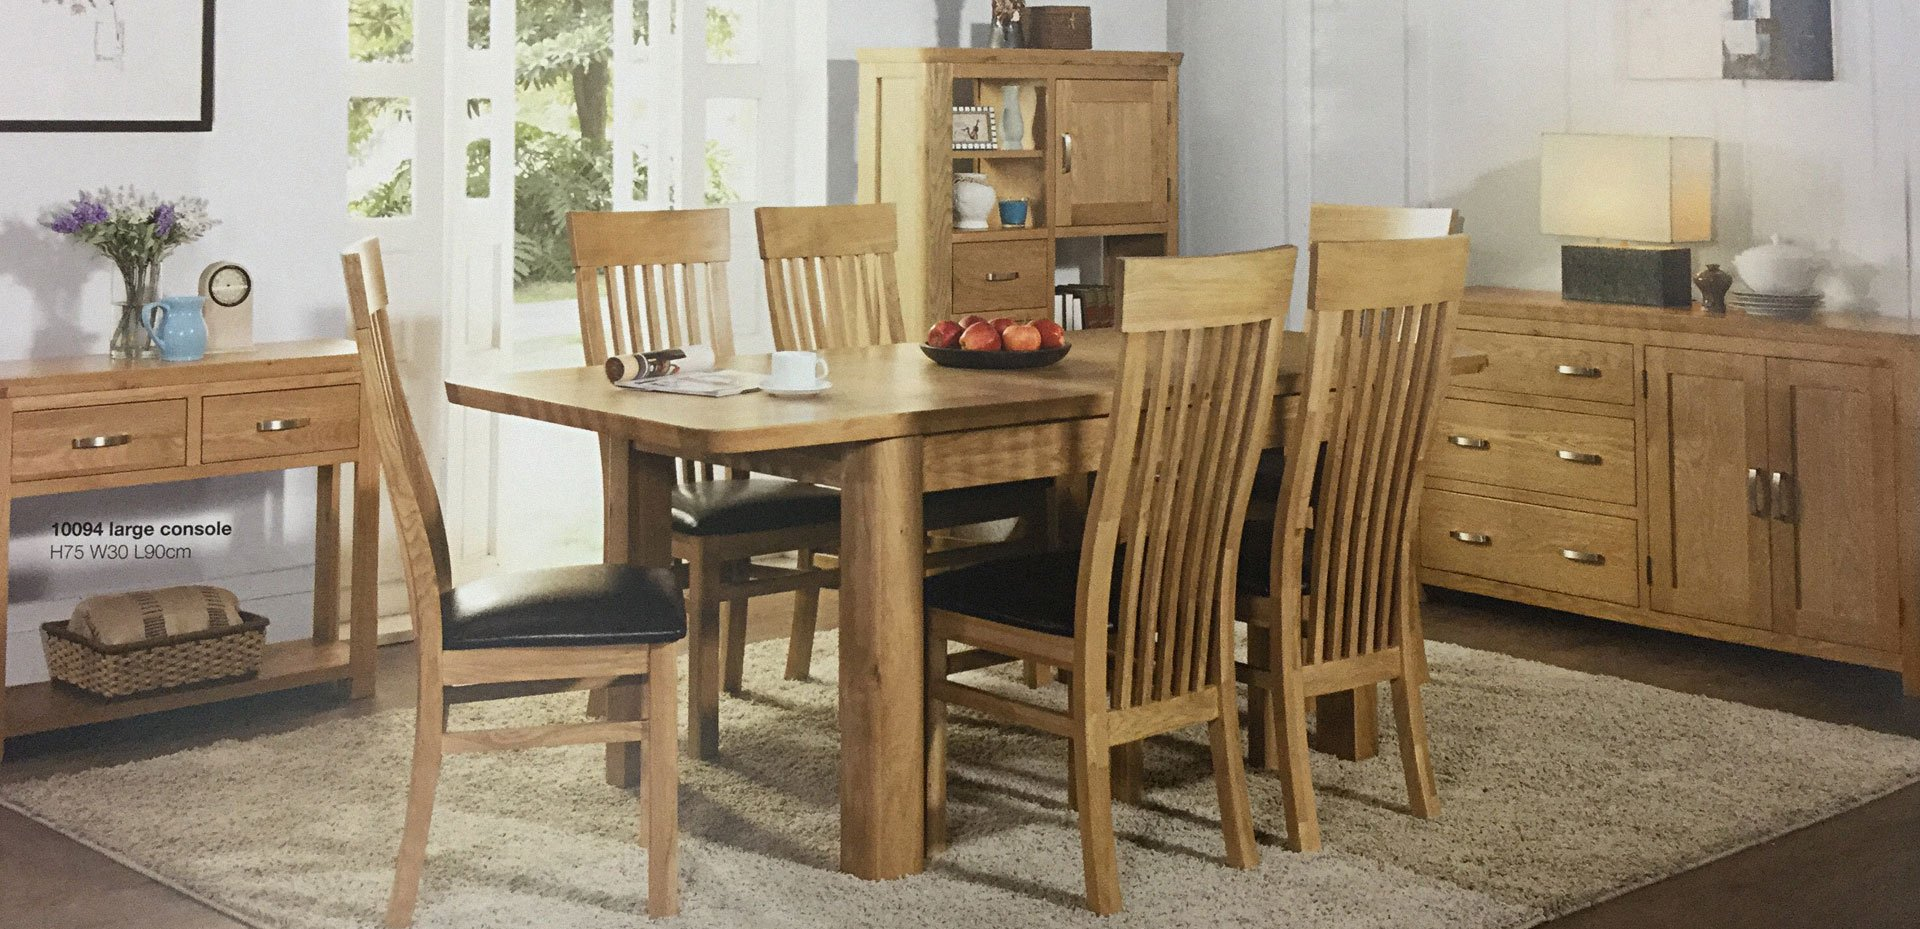 large console dining room furniture set